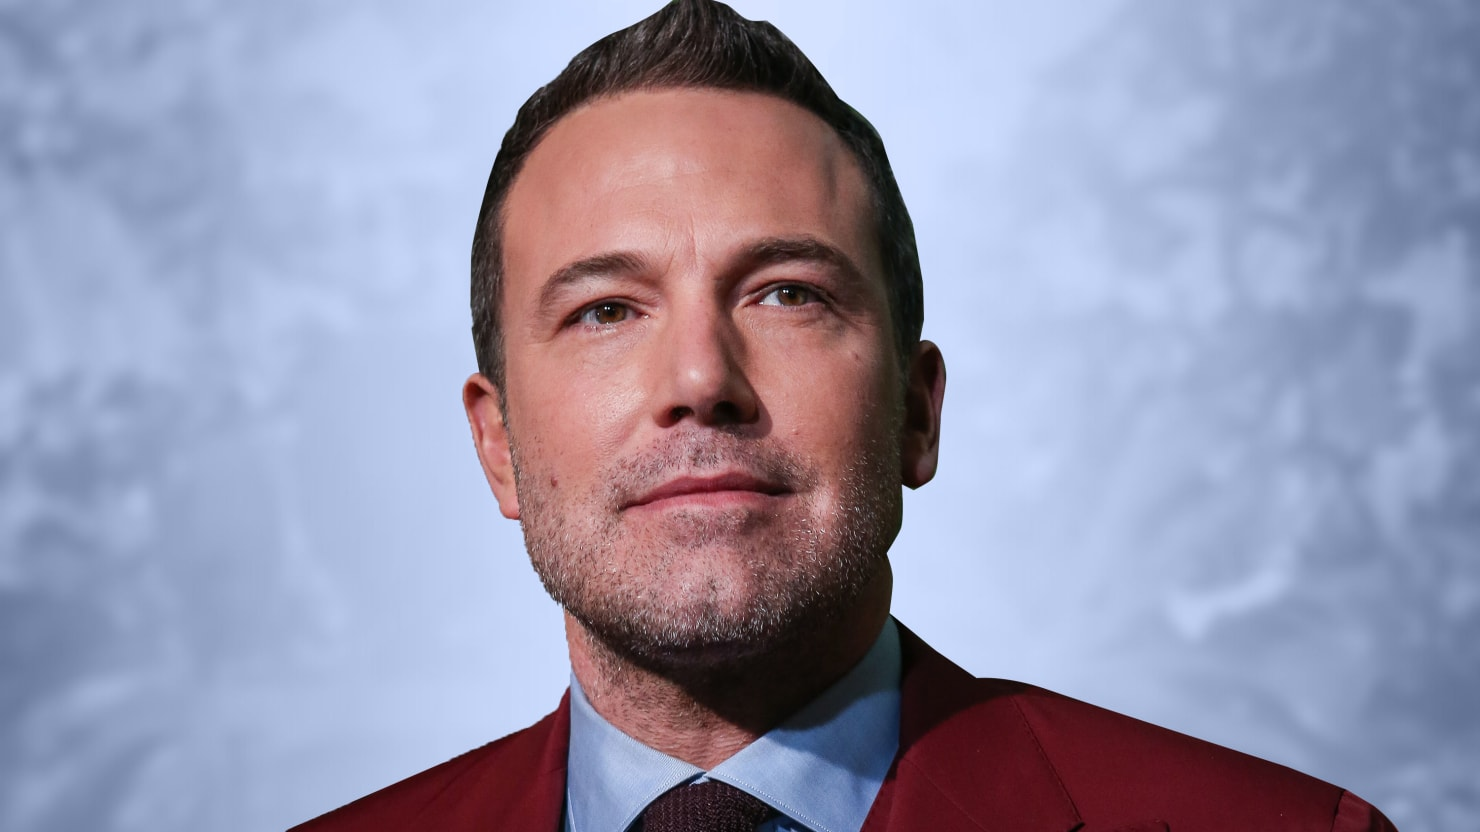 Ben Affleck Gets Candid About His Alcoholism and...